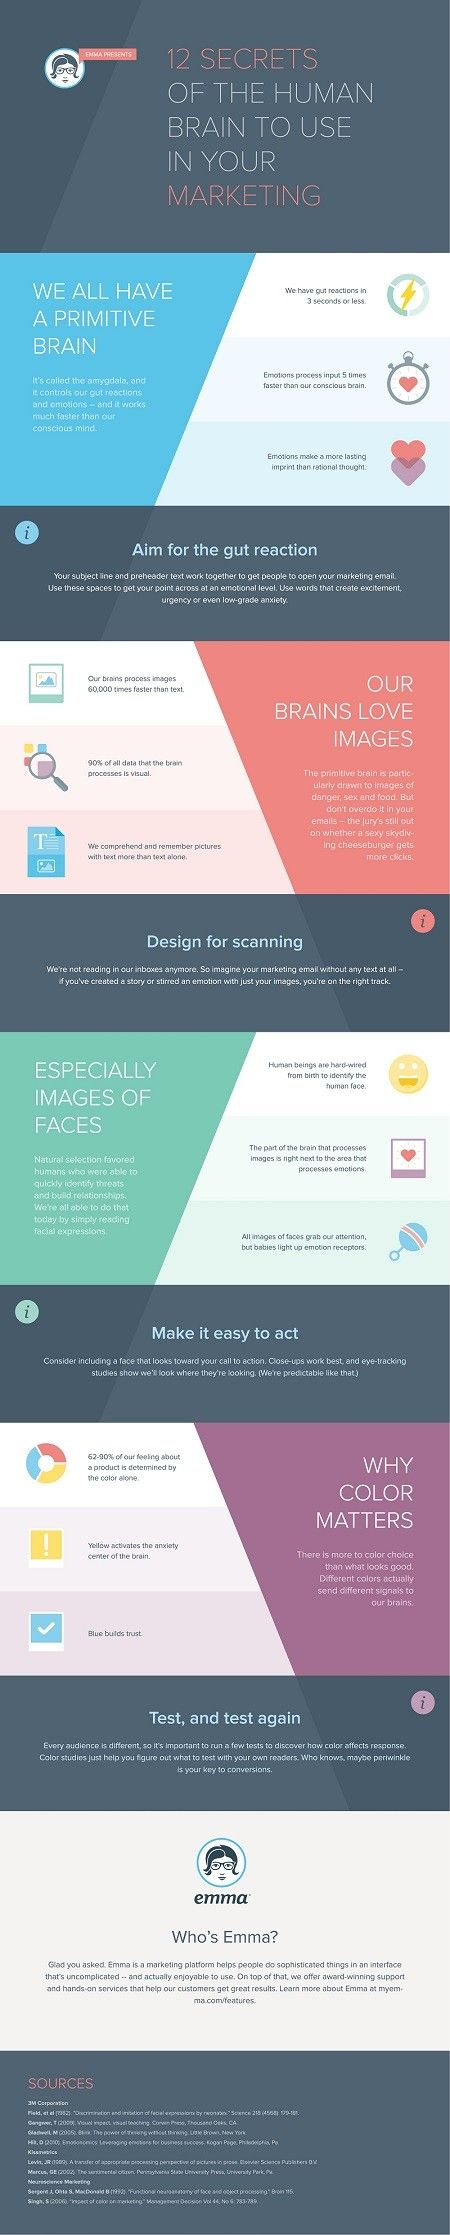 Customer Behavior - 12 Secrets of the Human Brain to Use in Your Marketing [Infographic] : MarketingProfs Article